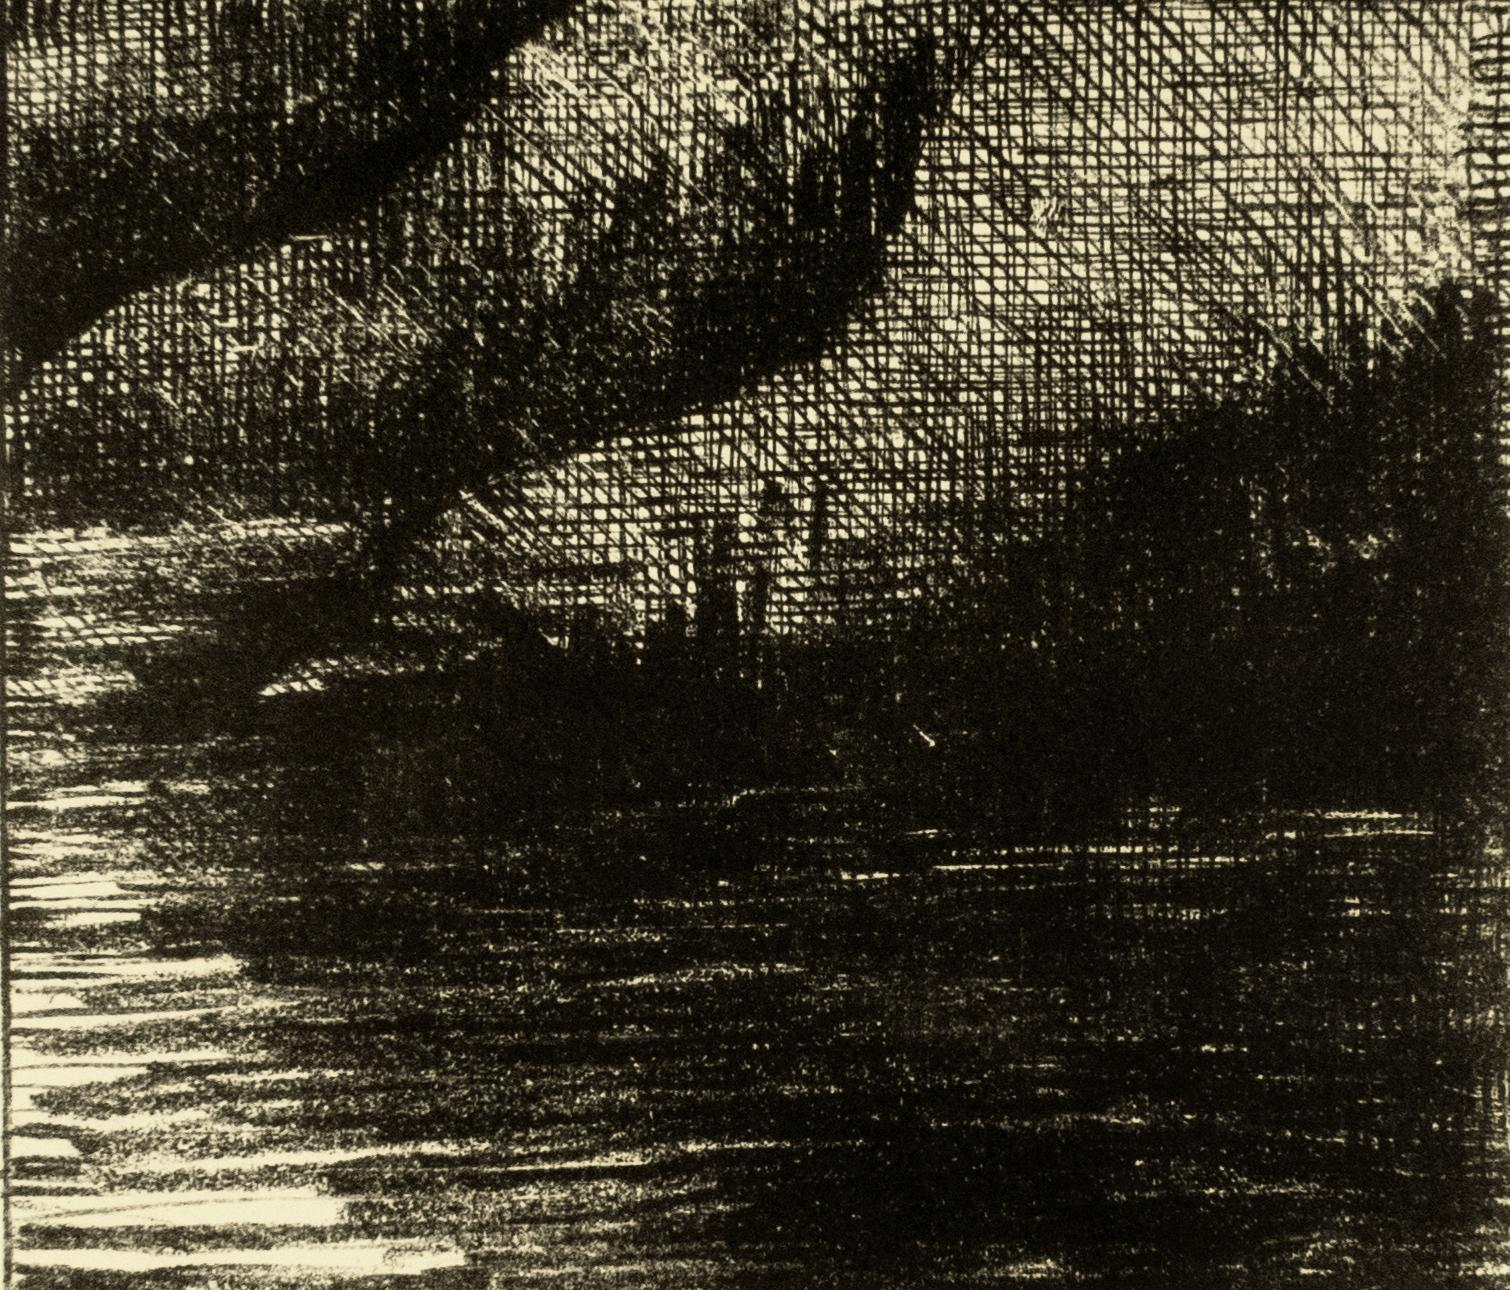 Fjord by Henry Moore drawing of Scottish landscape for W.H. Auden poetry book